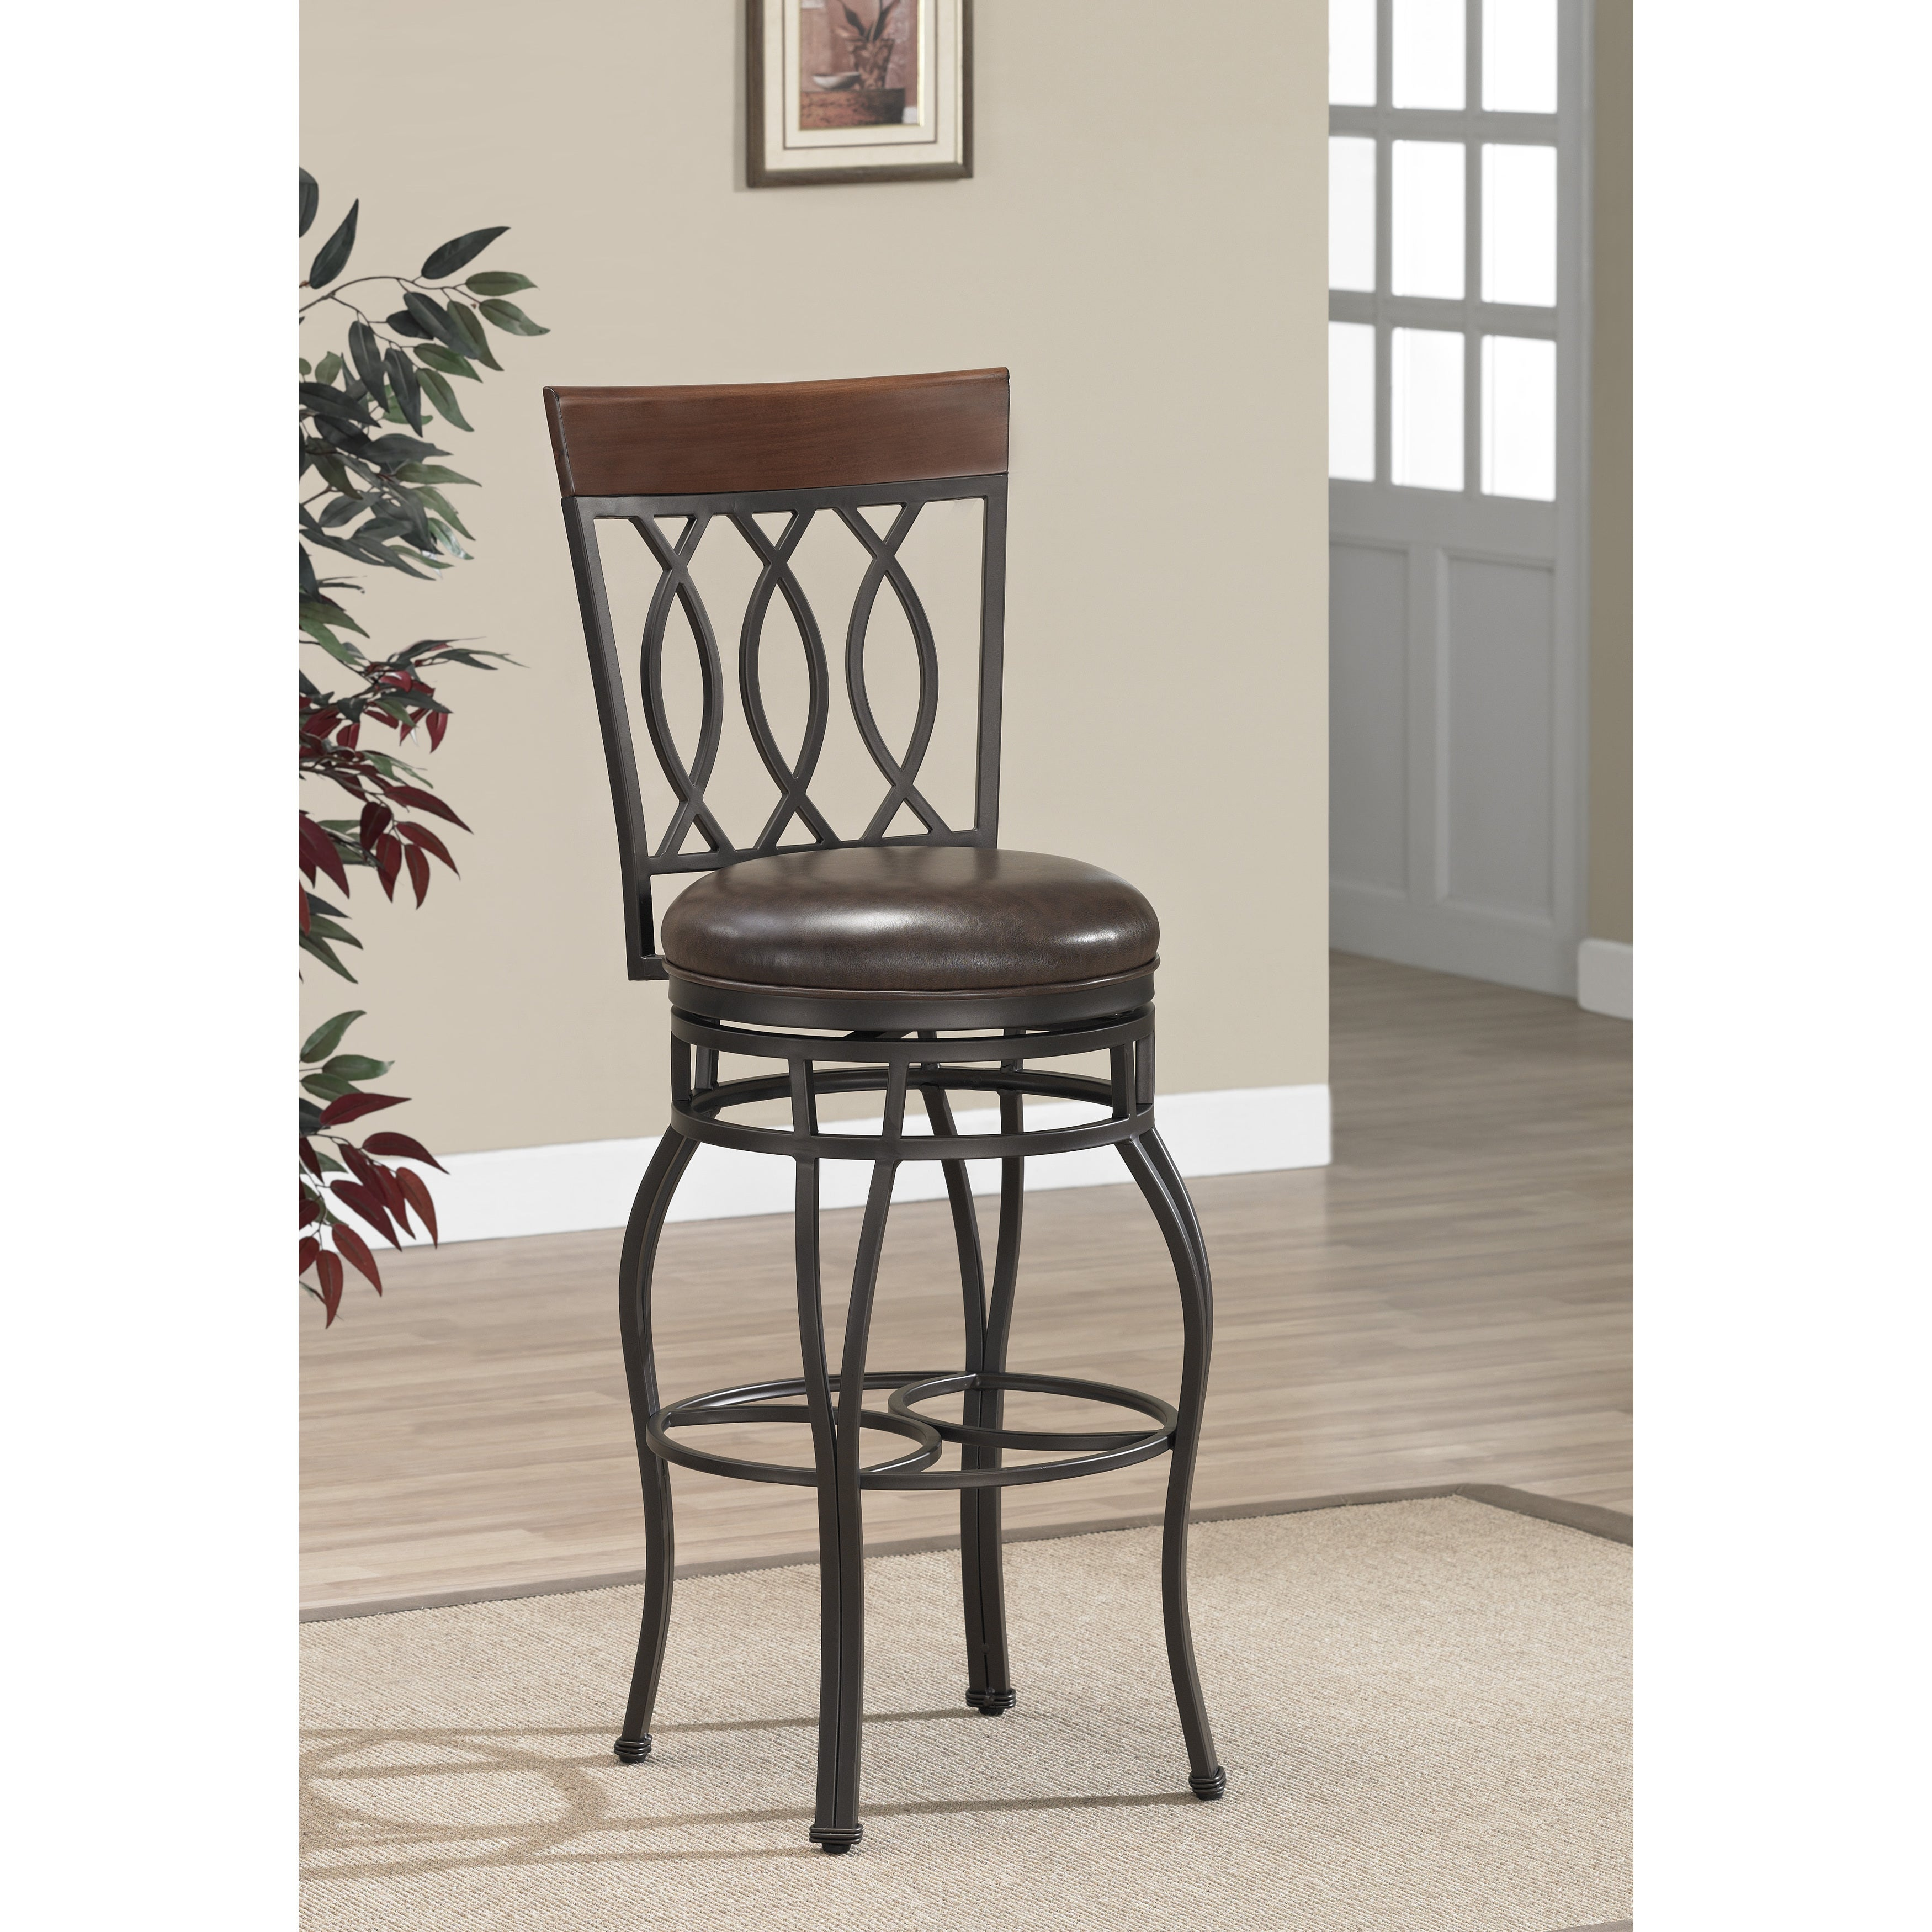 Shop gracewood hollow fitzgerald 34 inch swivel bar stool free shipping today overstock com 20000624